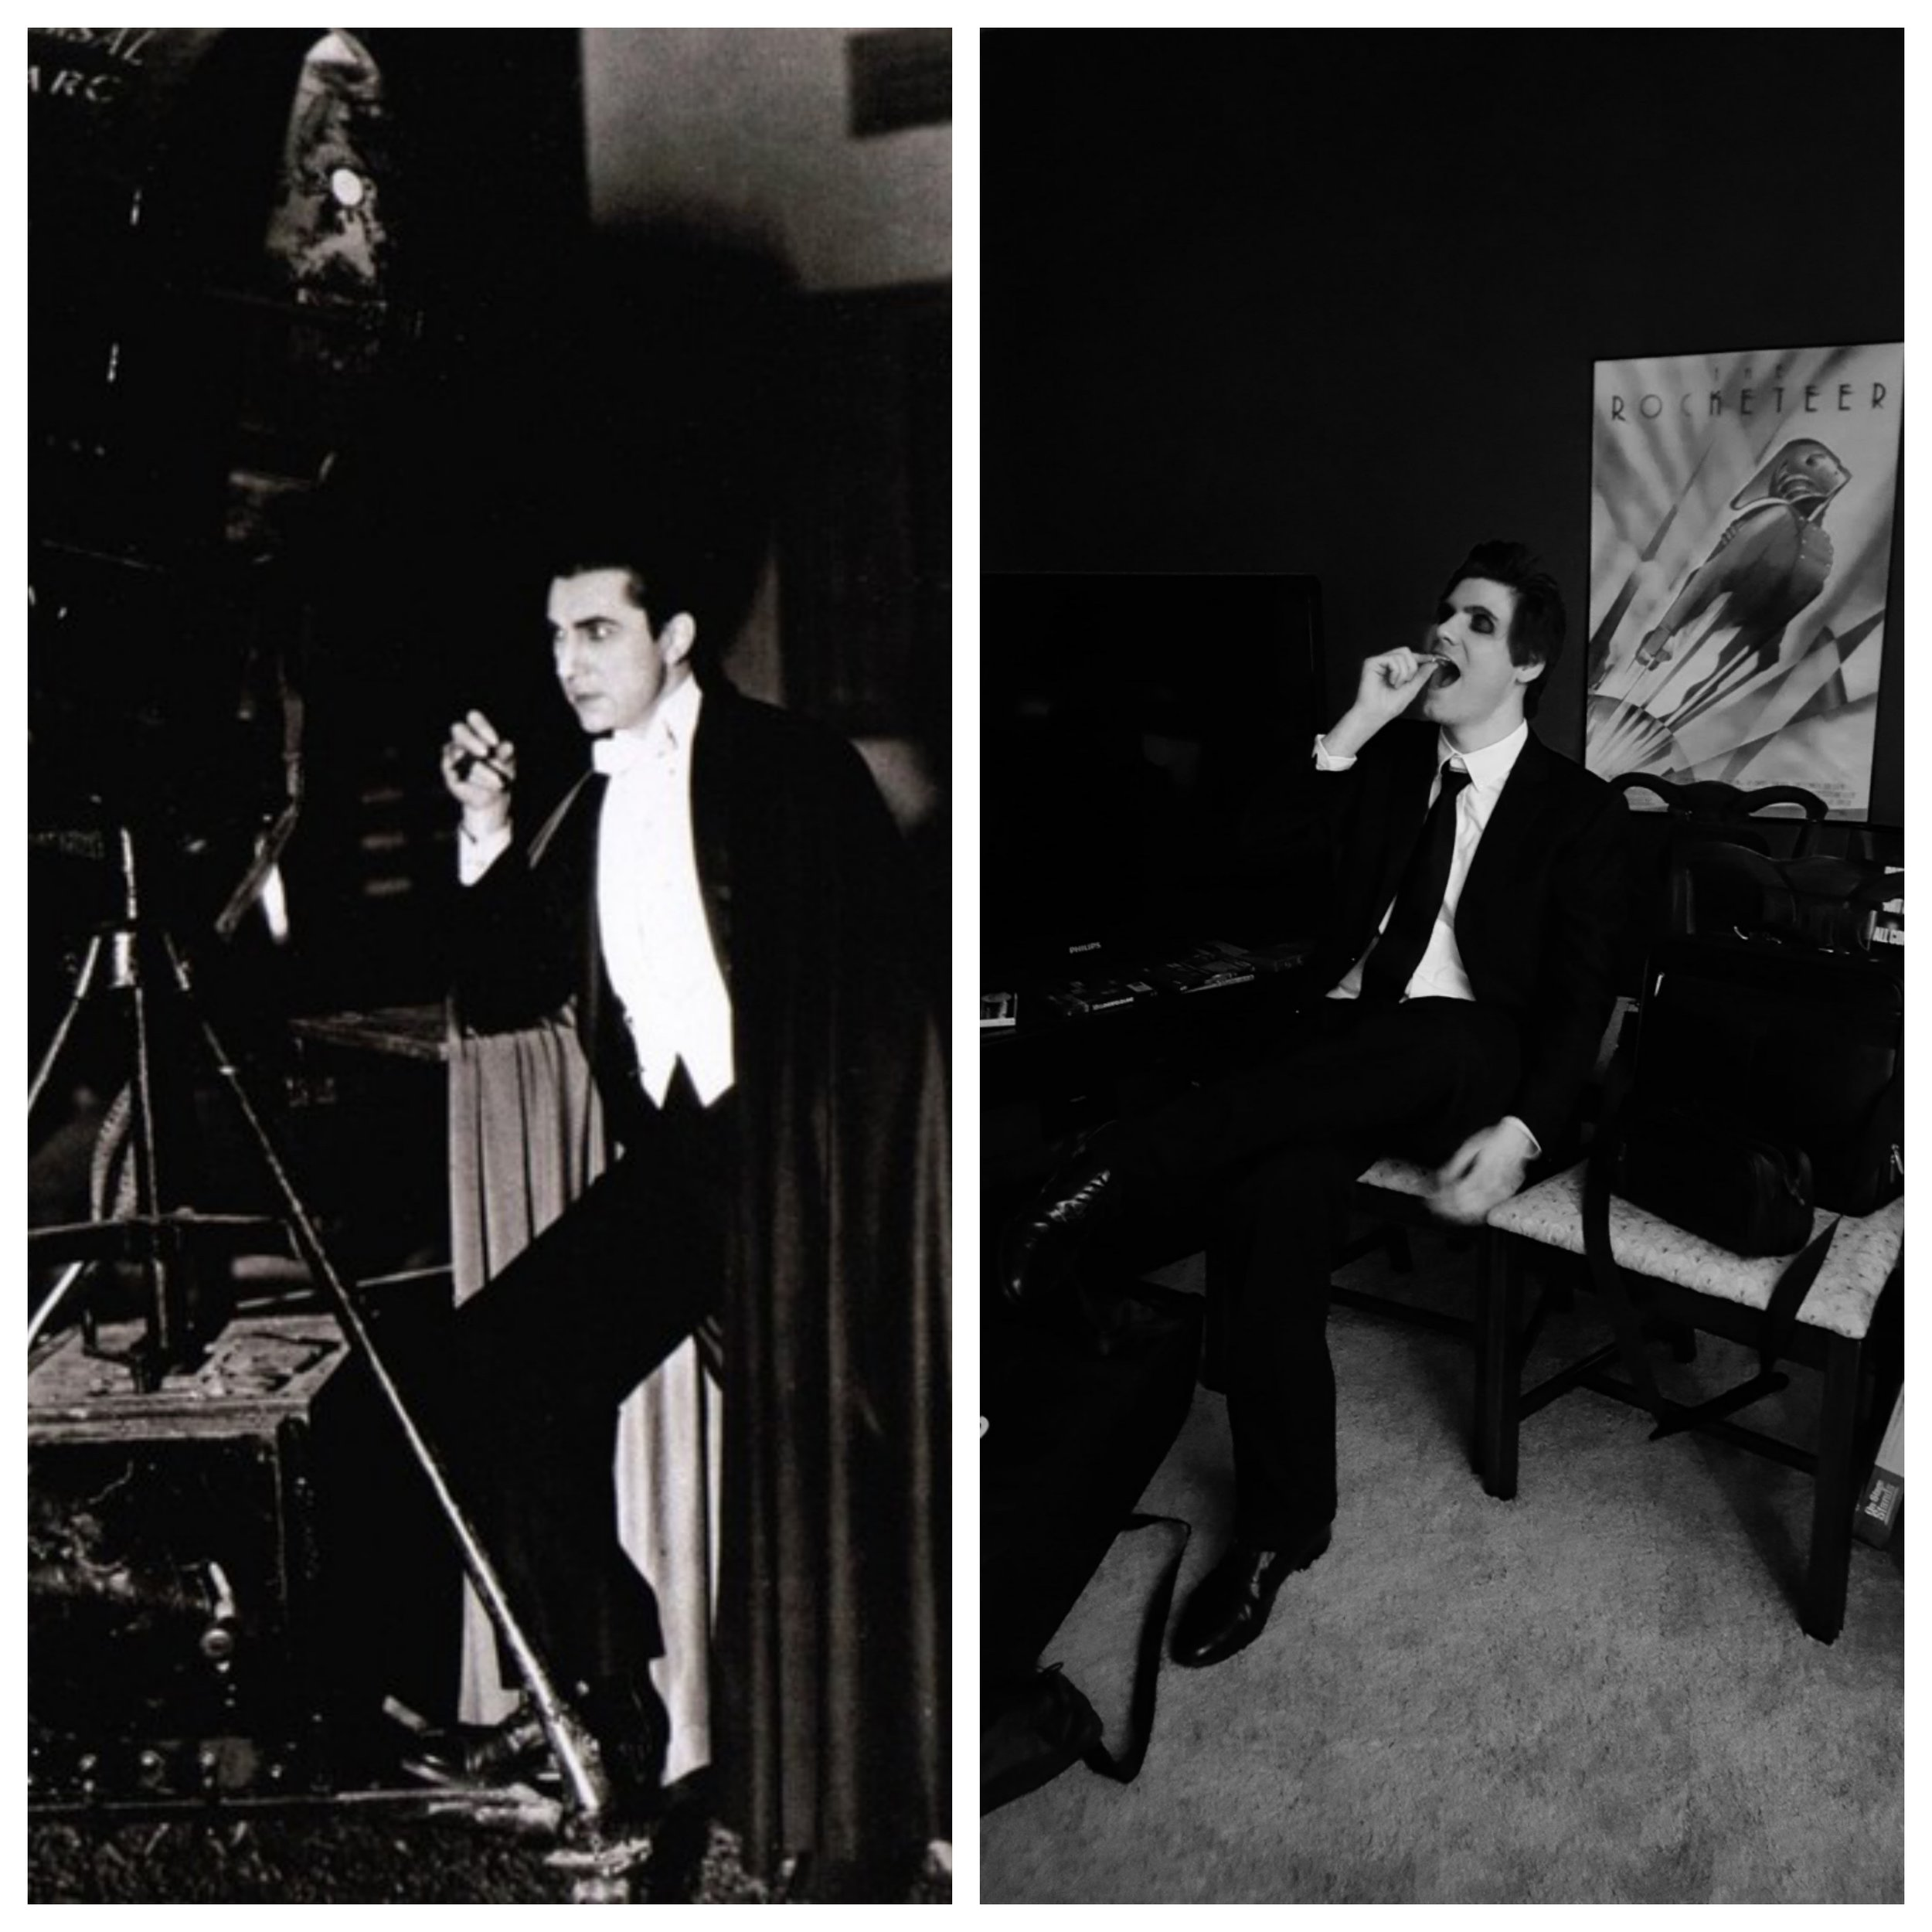 Kaz Kirkpatrick is both the star of the video and a sharp-eared, world-class sound man. Here he is pictured, alongside a publicity still of Bela Lugosi from the 1930s. Eagle-eyed readers will realize that Mr. Kirkpatrick is the one on the left... er... right. Kaz is on the right. Right?